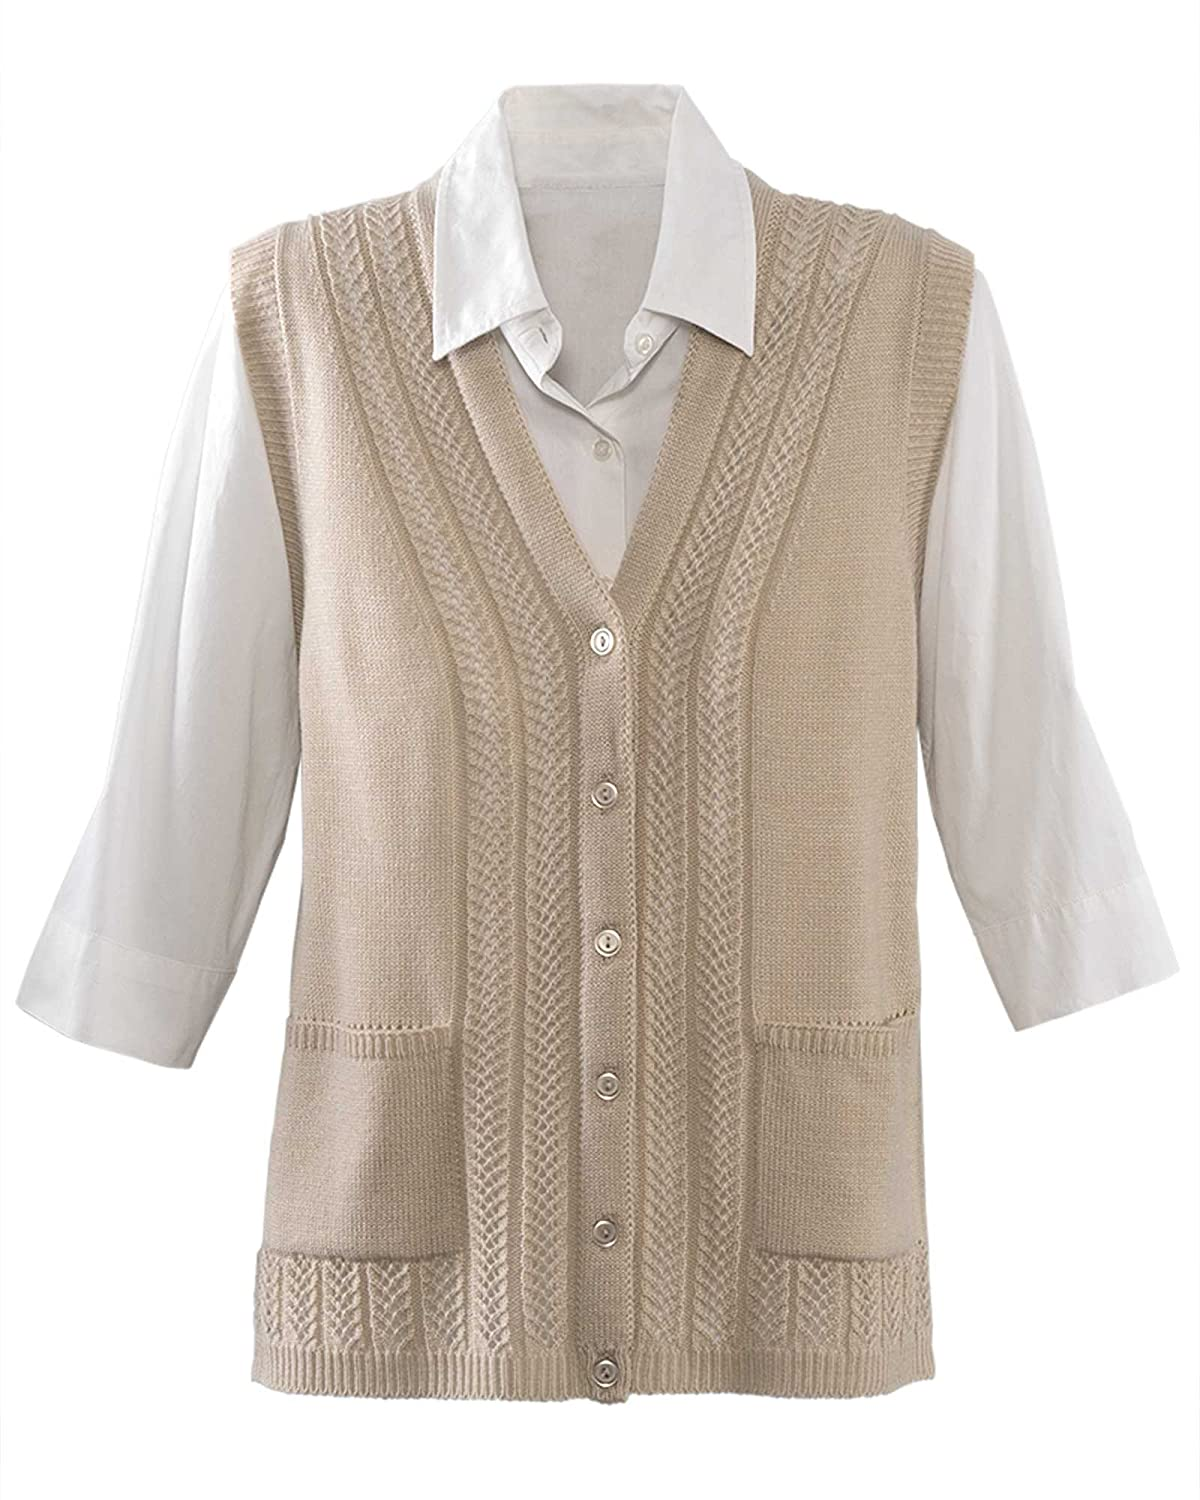 1940s Sweater Styles National Classic Sweater Vest $34.95 AT vintagedancer.com